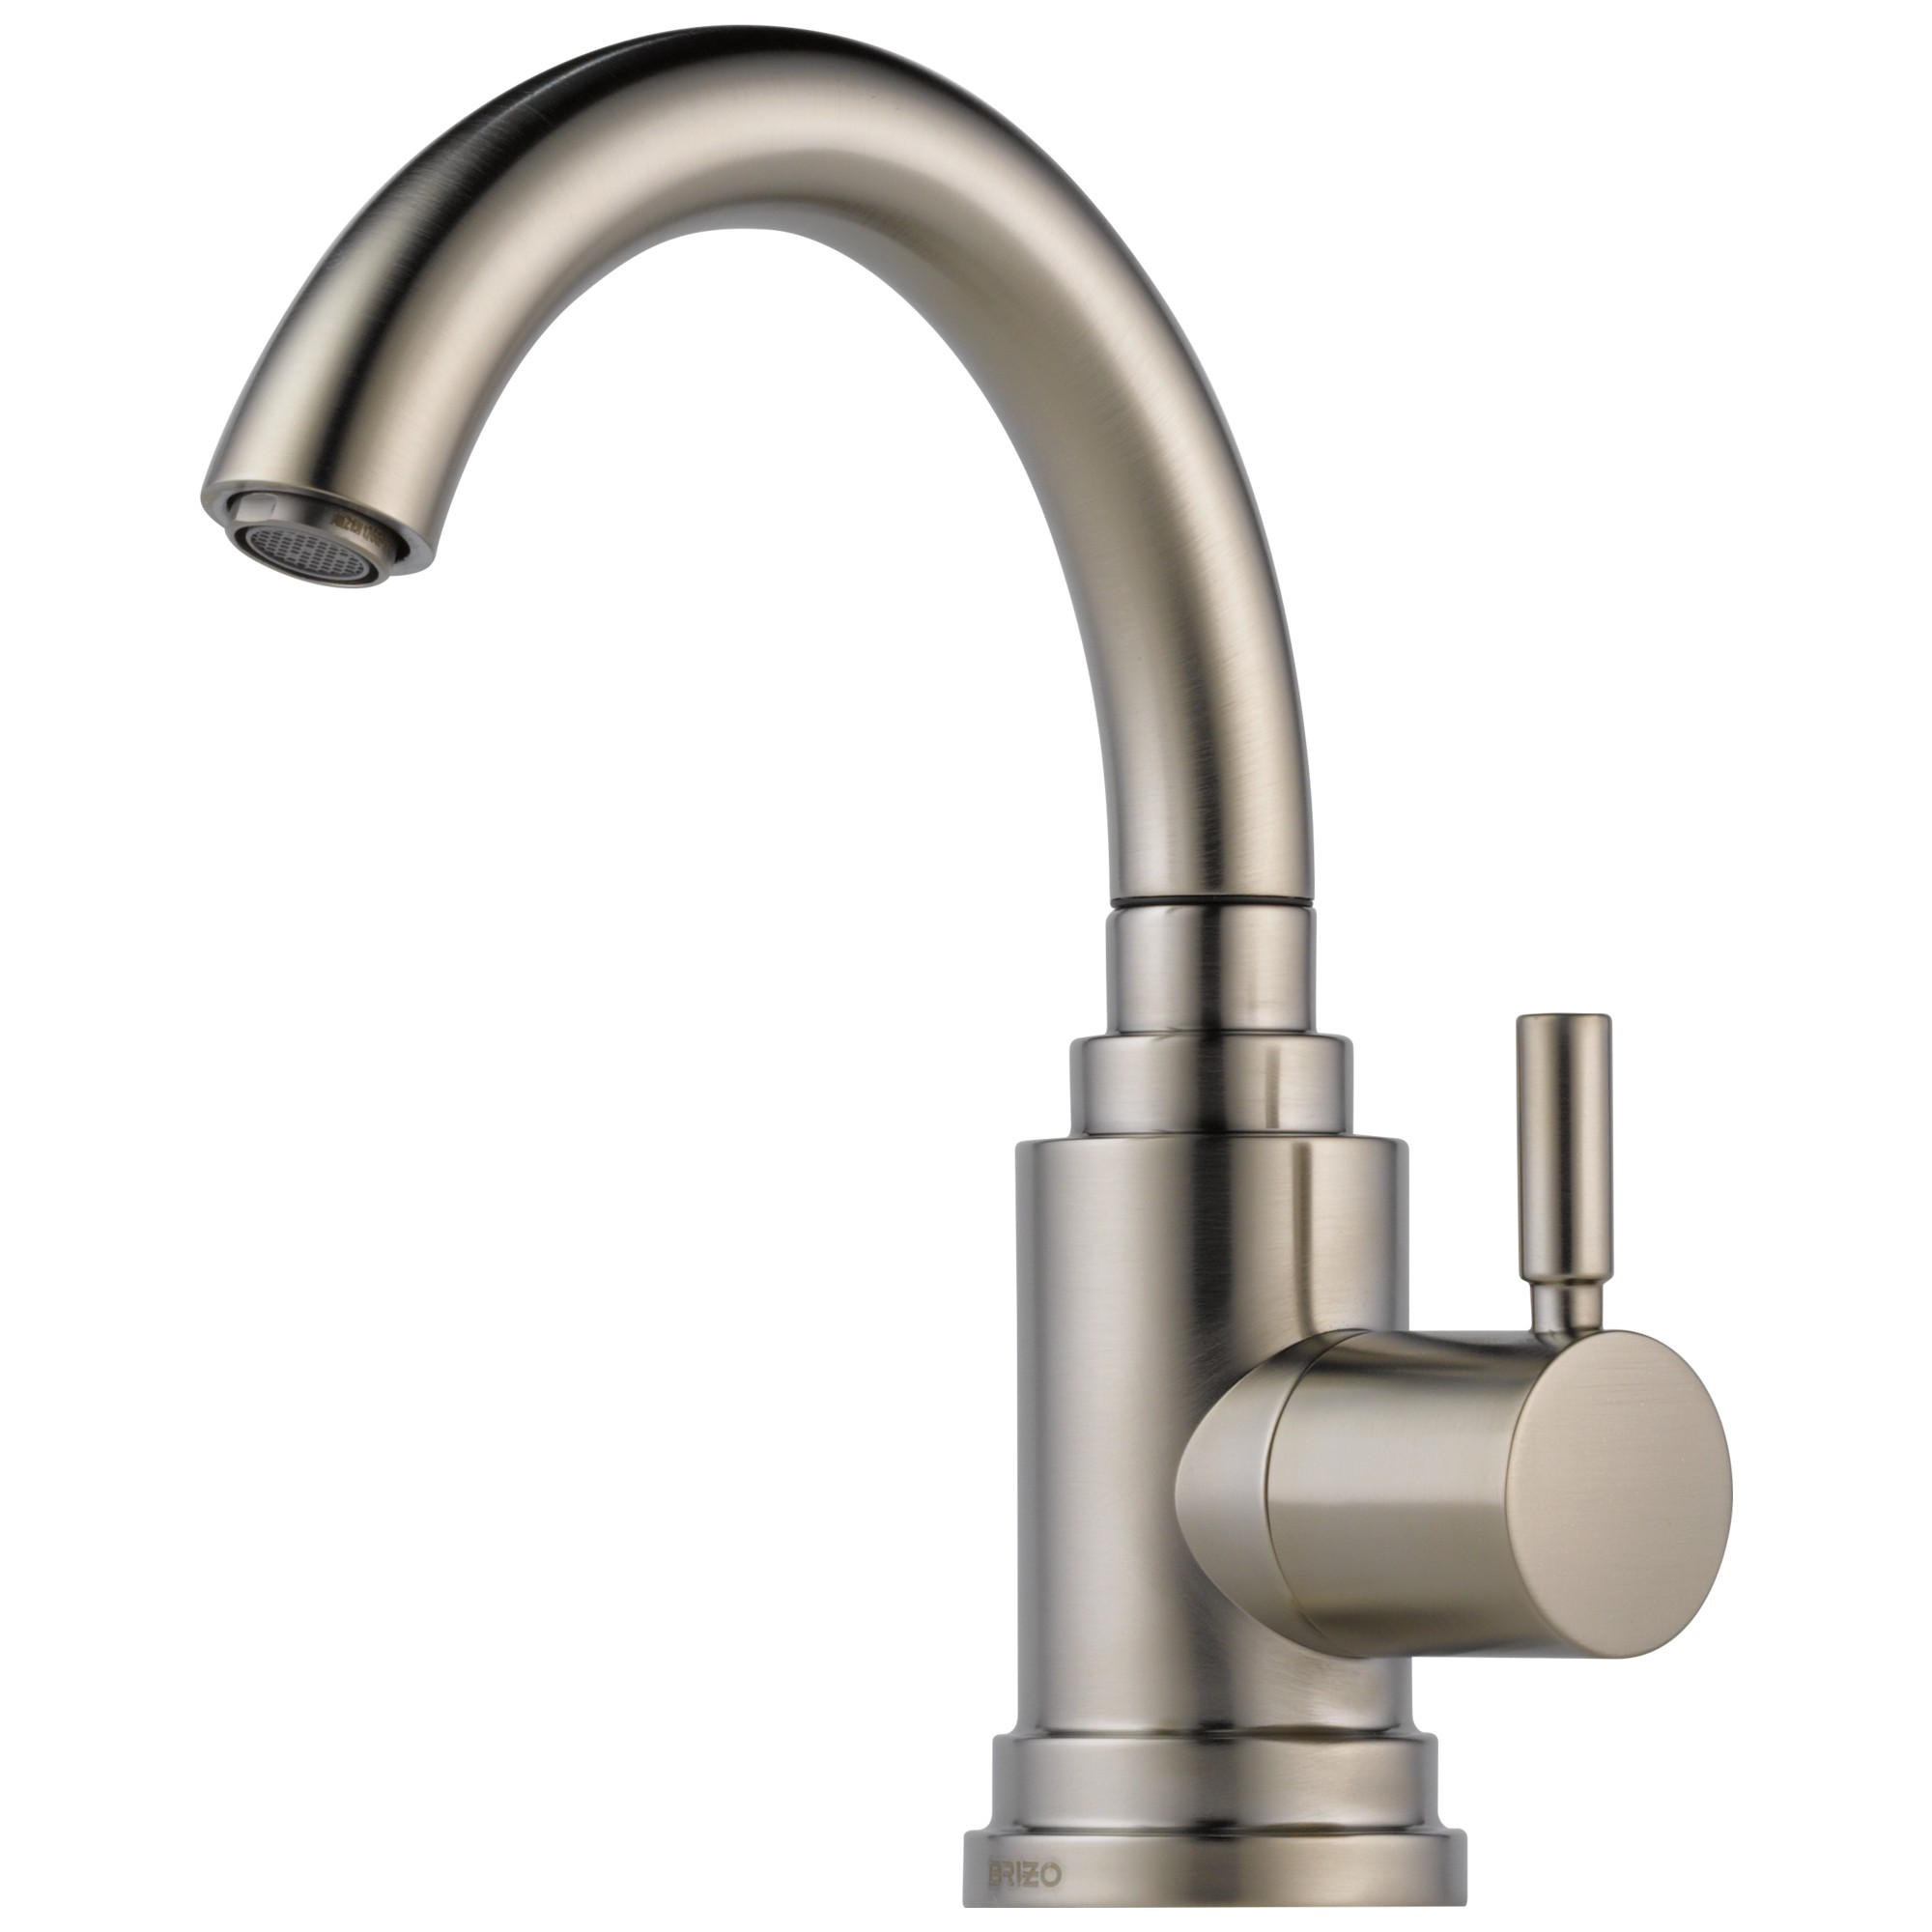 Brizo 61320LF-SS Other Beverage Faucet - Stainless